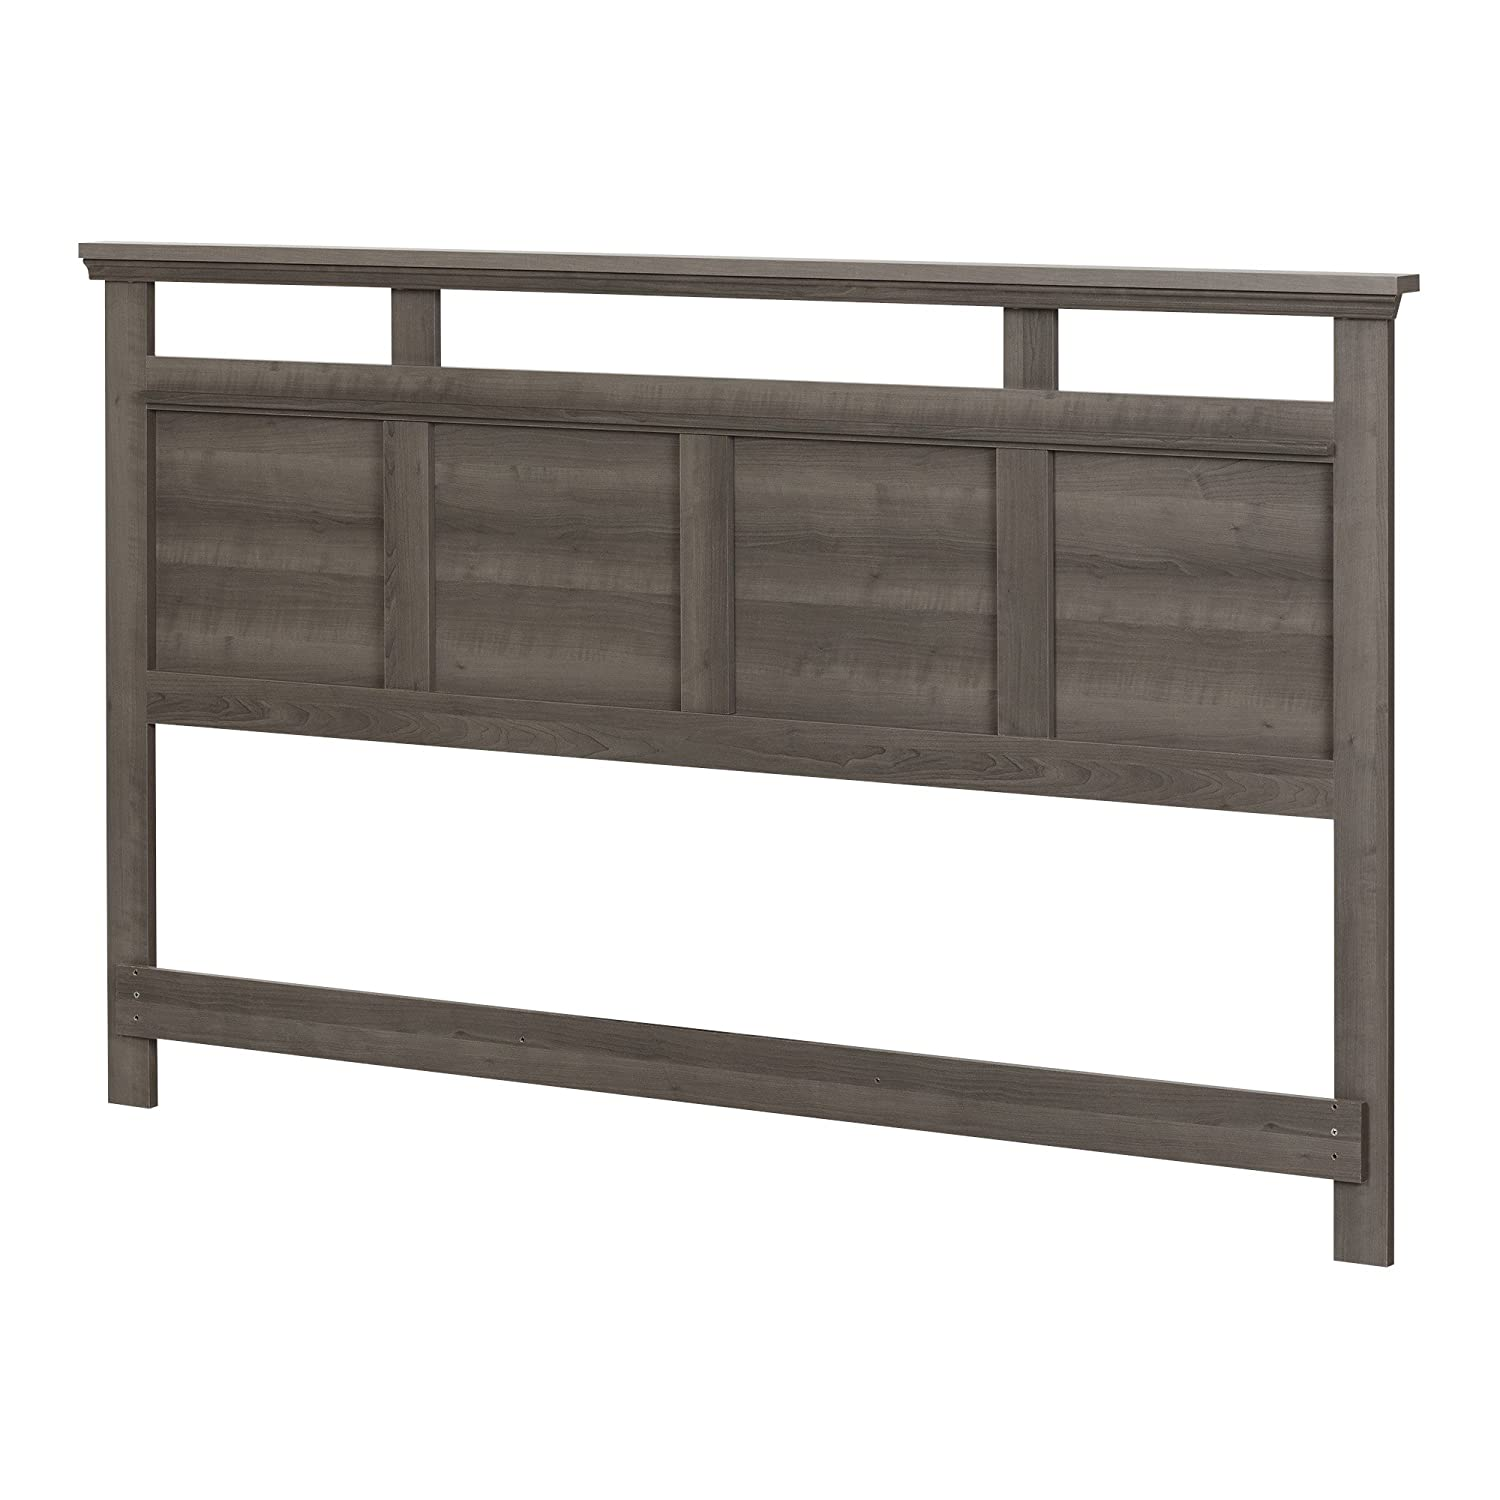 South Shore Furniture Versa Headboard (78'), King, Gray Maple 10605